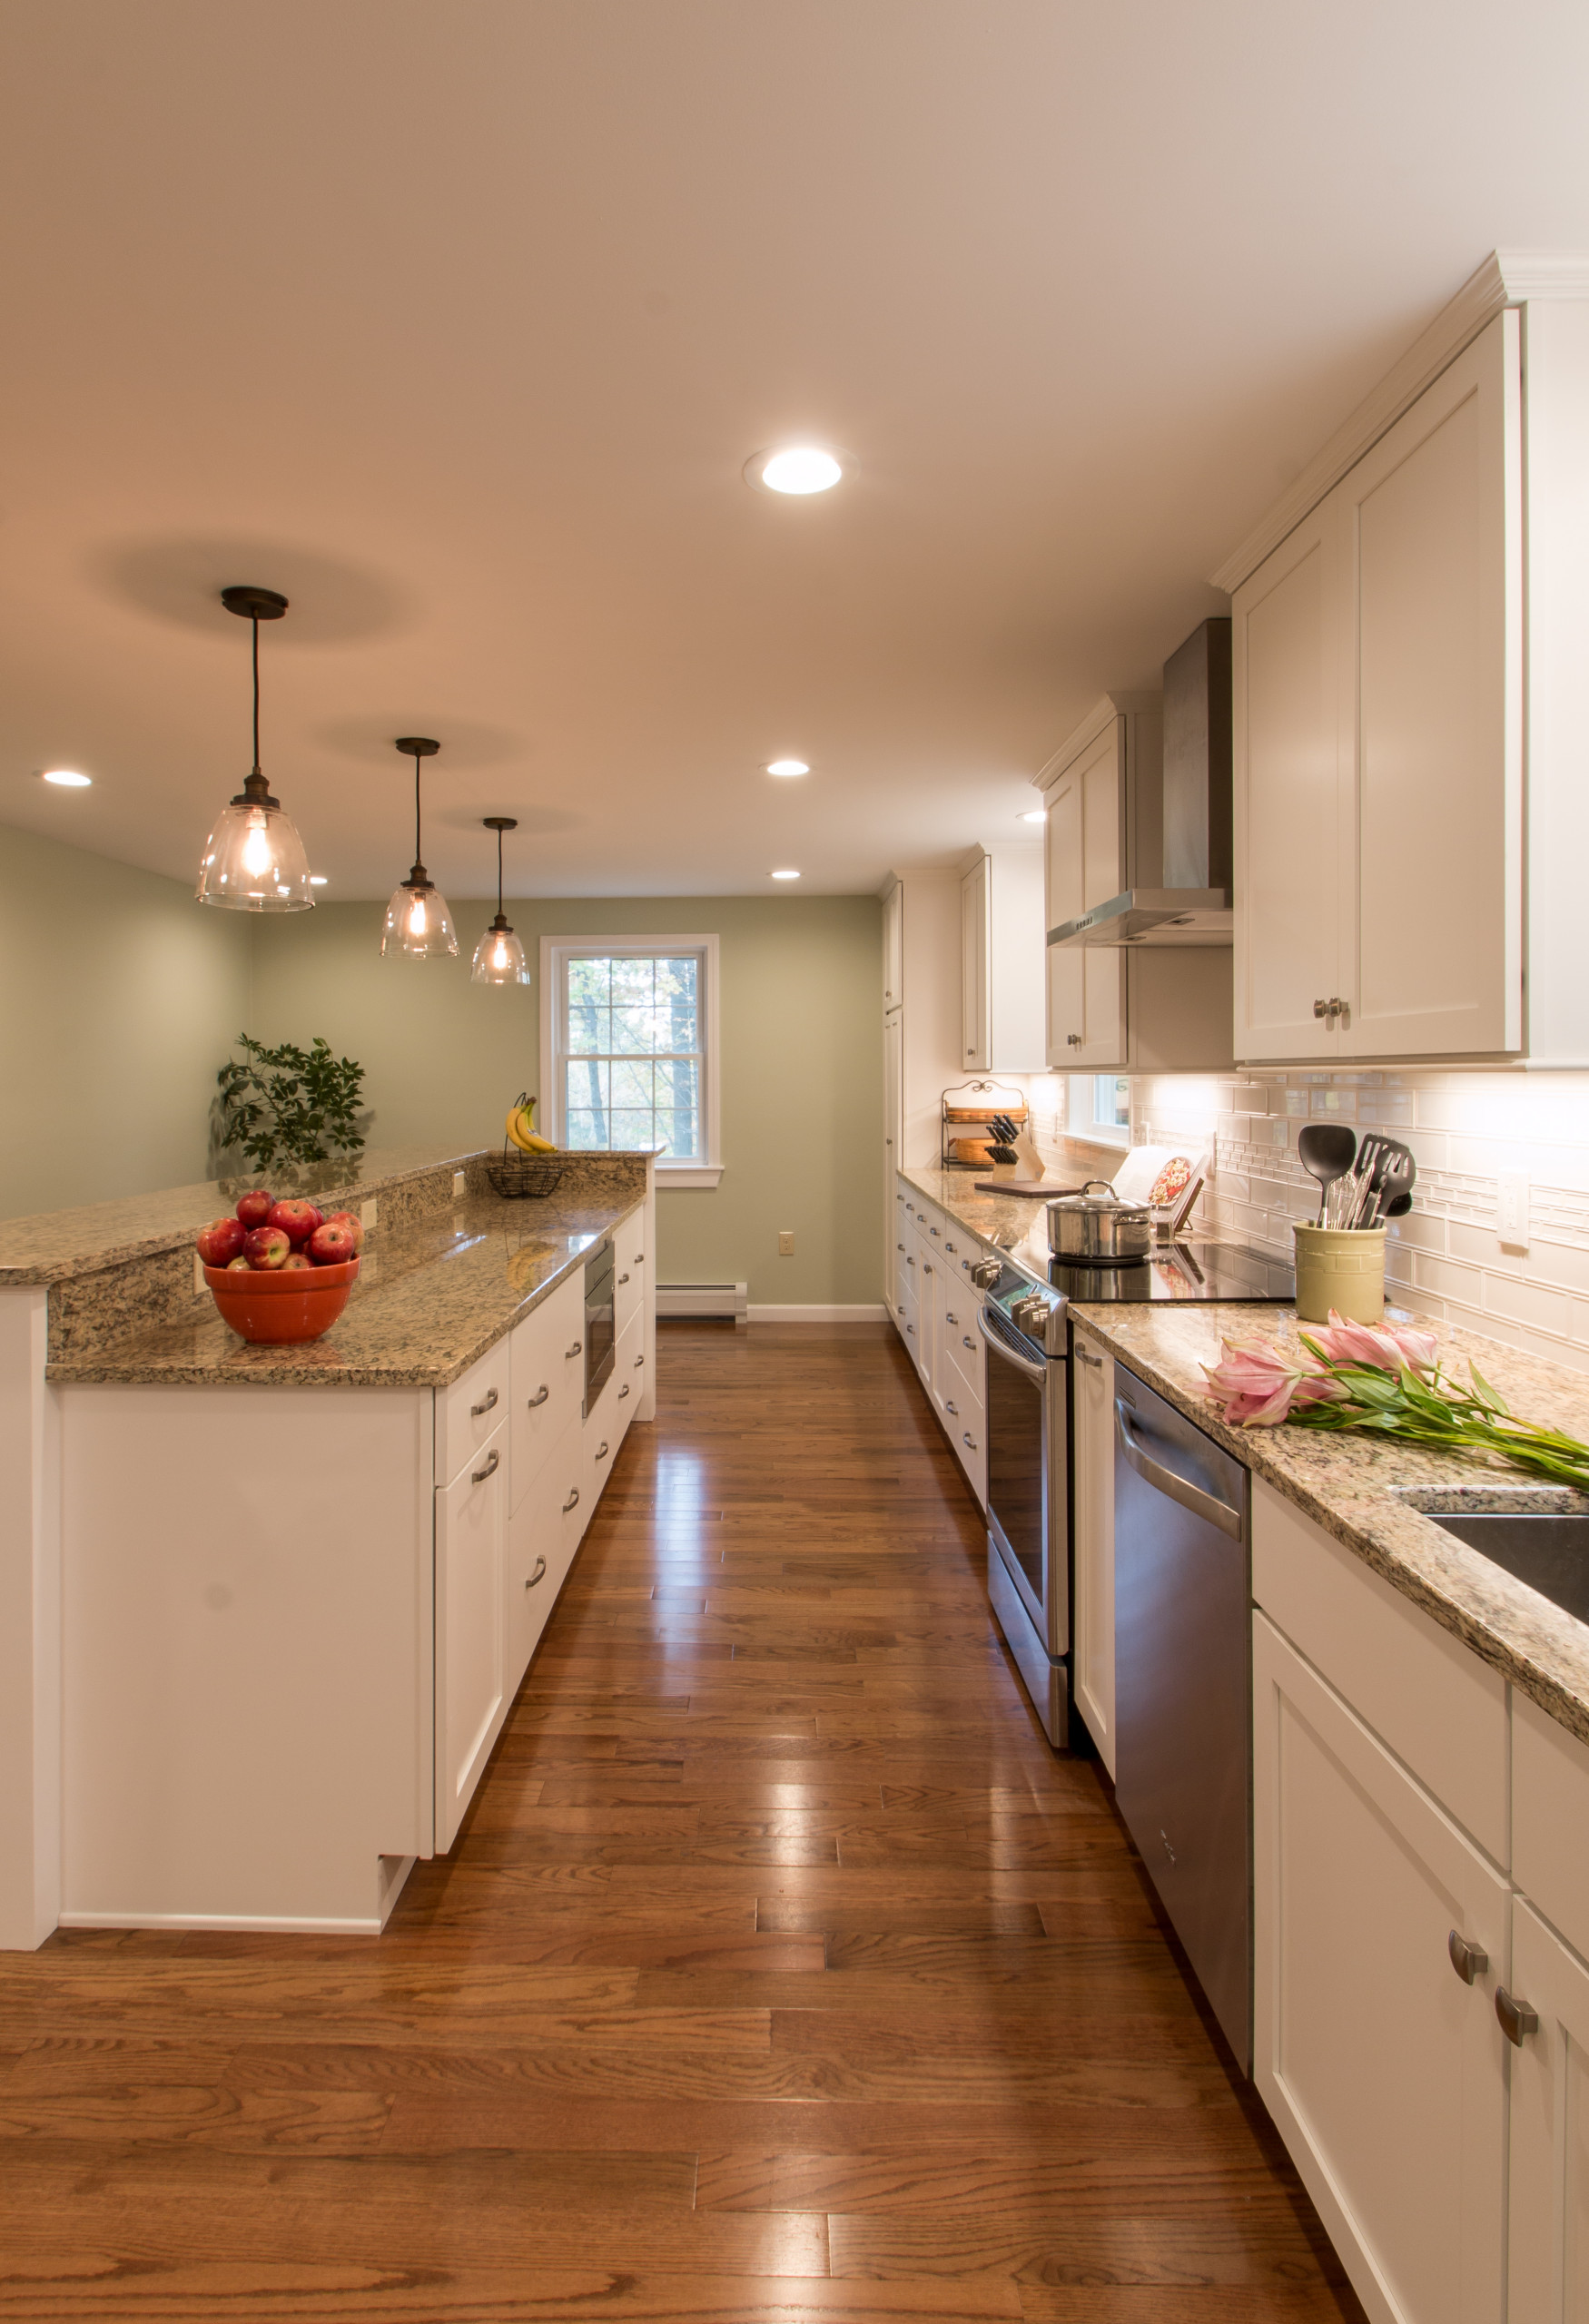 An efficient kitchen with a generous island is easy to work in with plenty of st